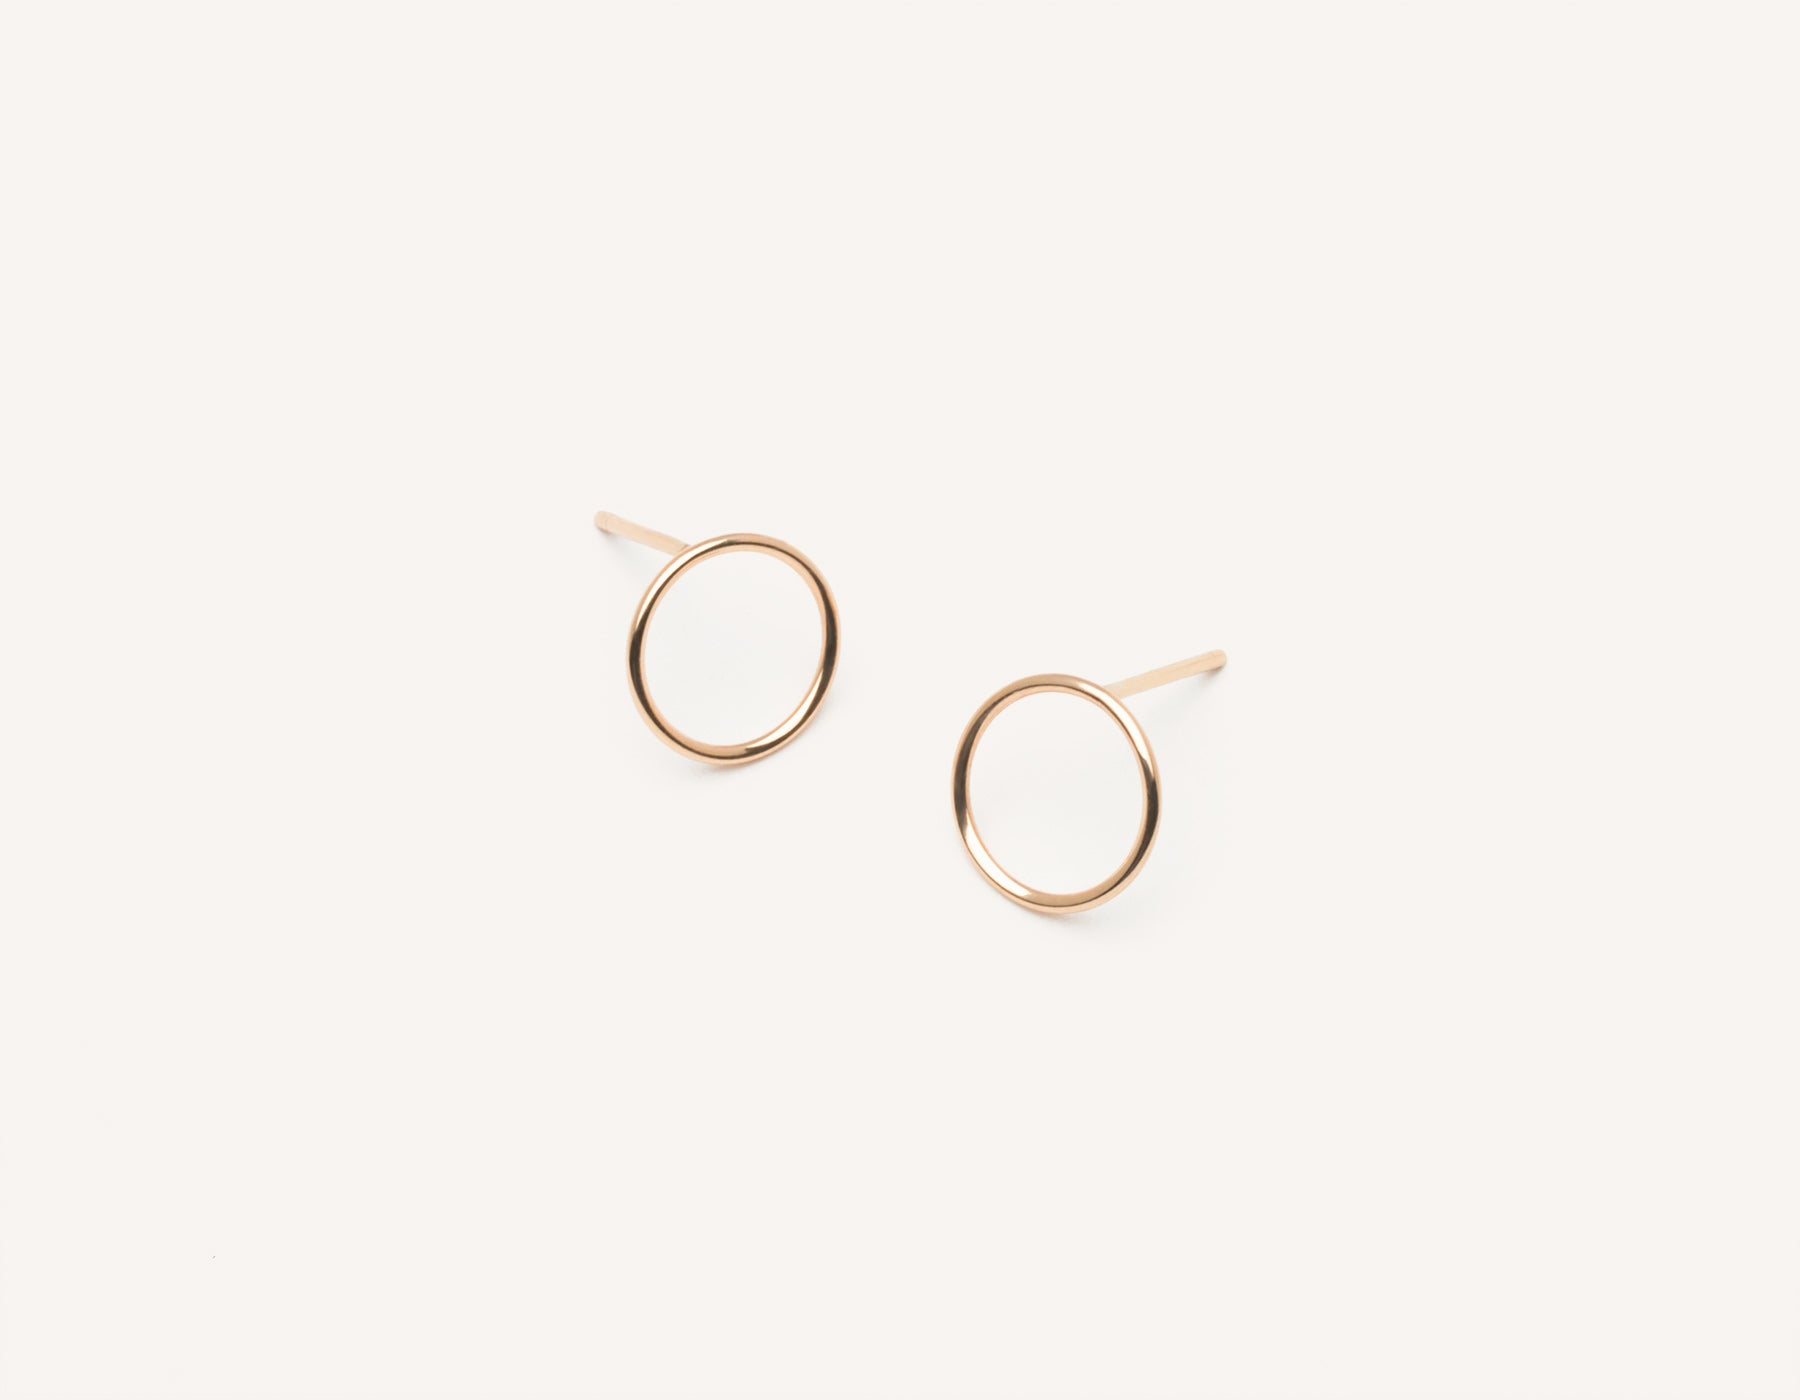 Simple classic Circle Stud Earrings 14k solid gold Vrai & Oro minimalist jewelry, 14K Rose Gold